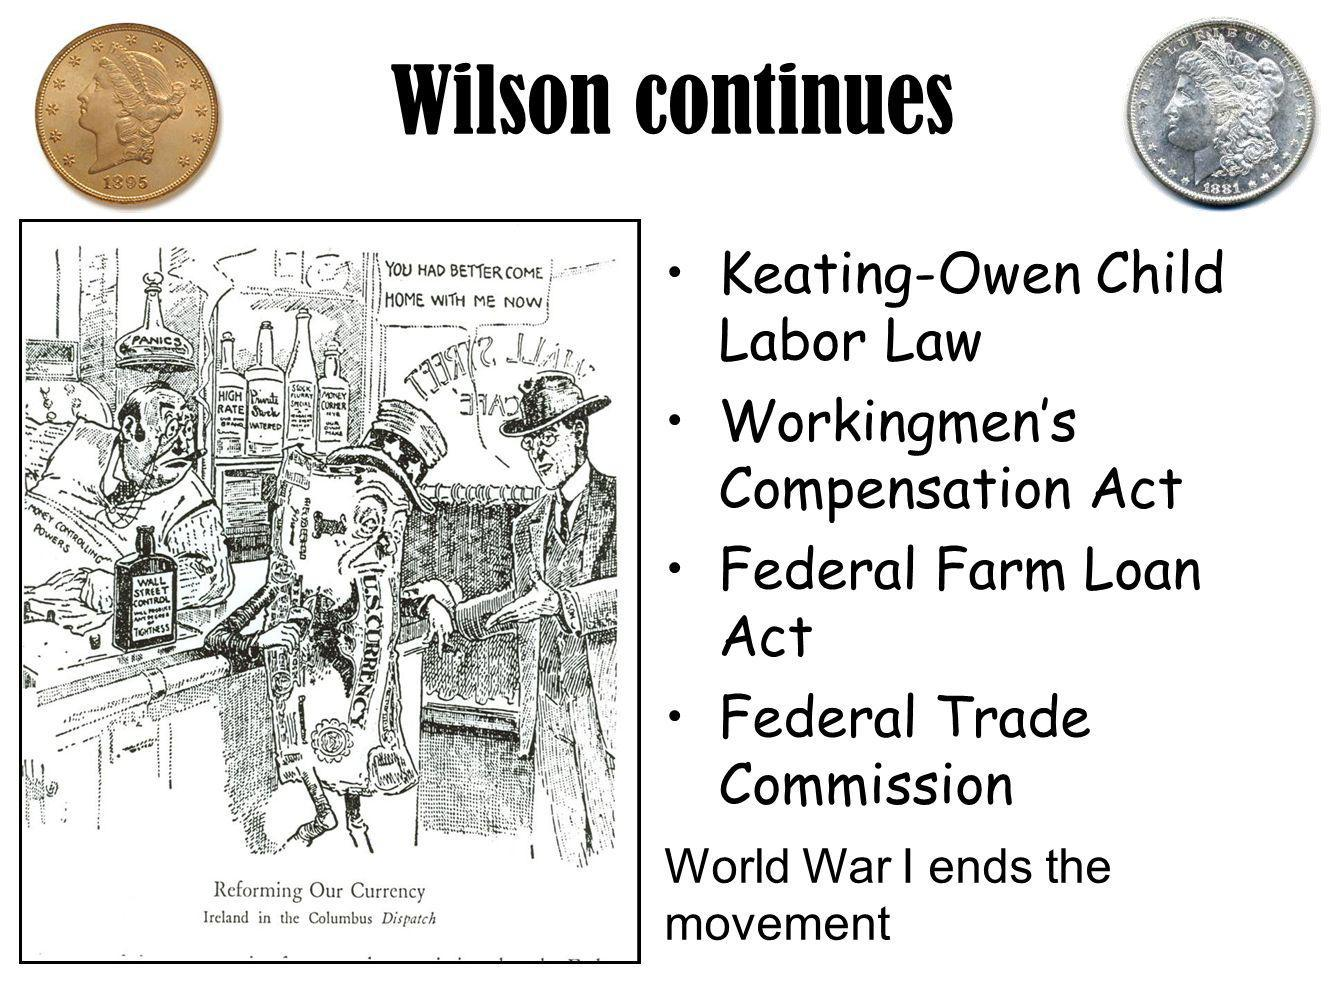 Wilson continues Keating-Owen Child Labor Law Workingmen's Compensation Act Federal Farm Loan Act Federal Trade Commission World War I ends the movement